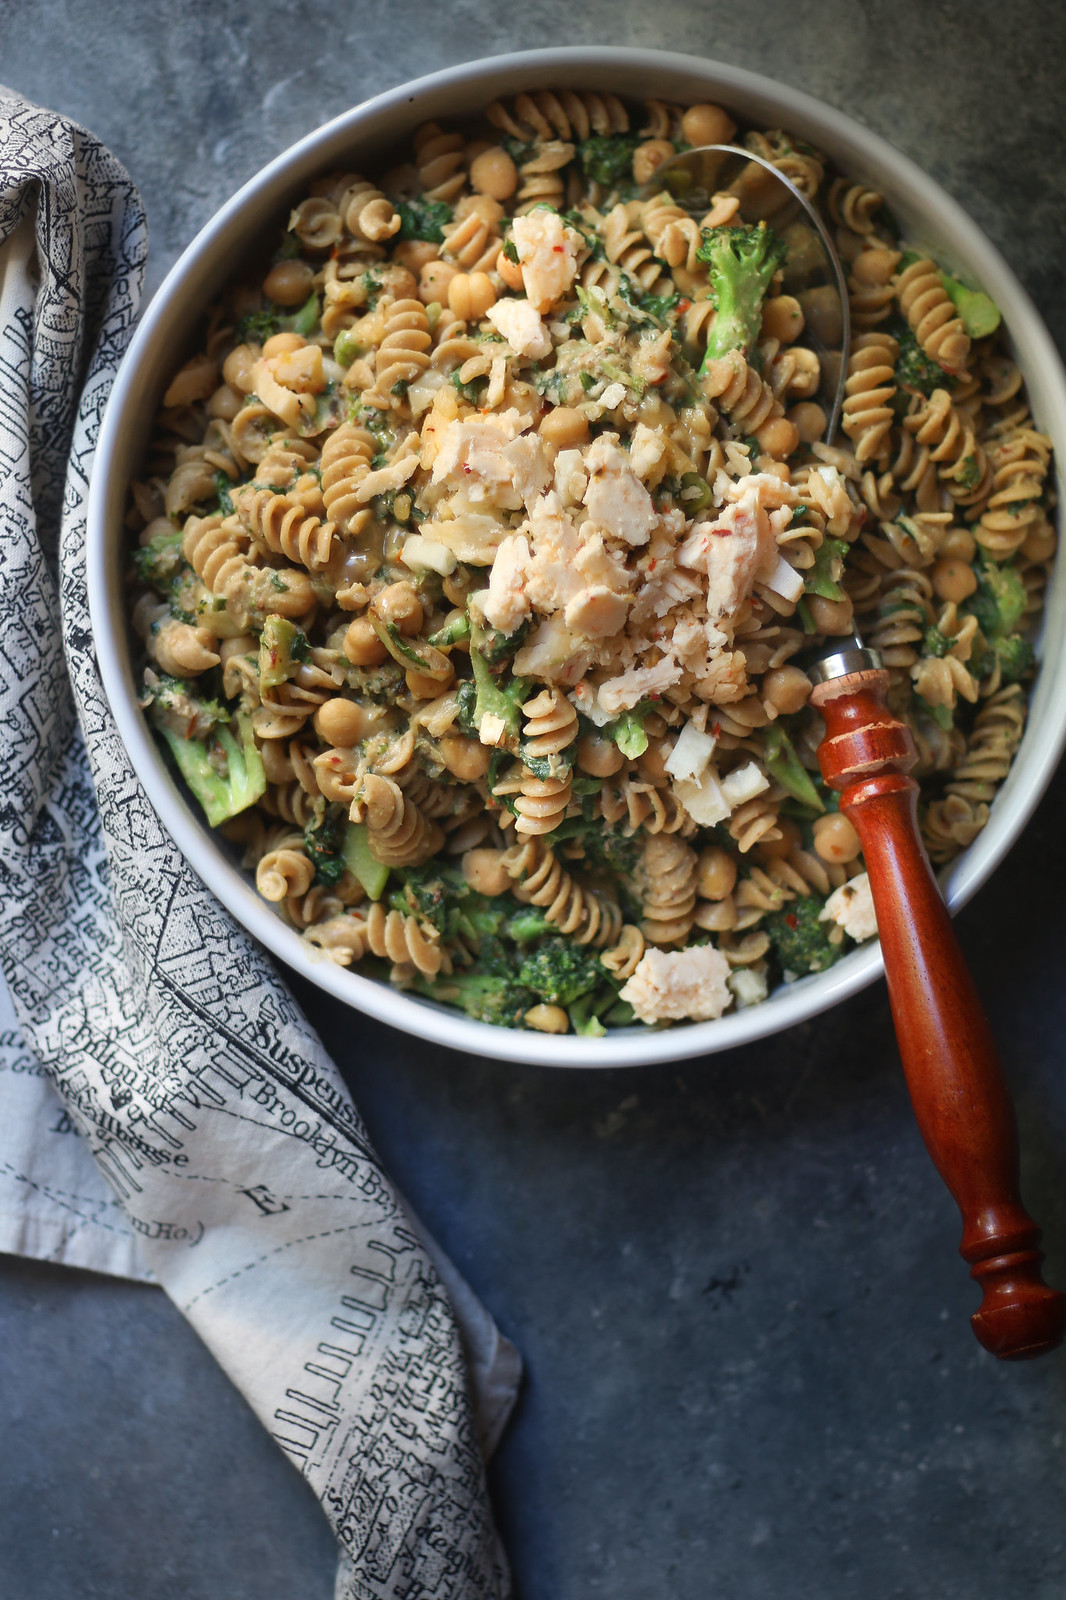 Butter Bean Walnut Hummus and Broccoli-Spinach Butter Bean Pasta |foodfashionparty|